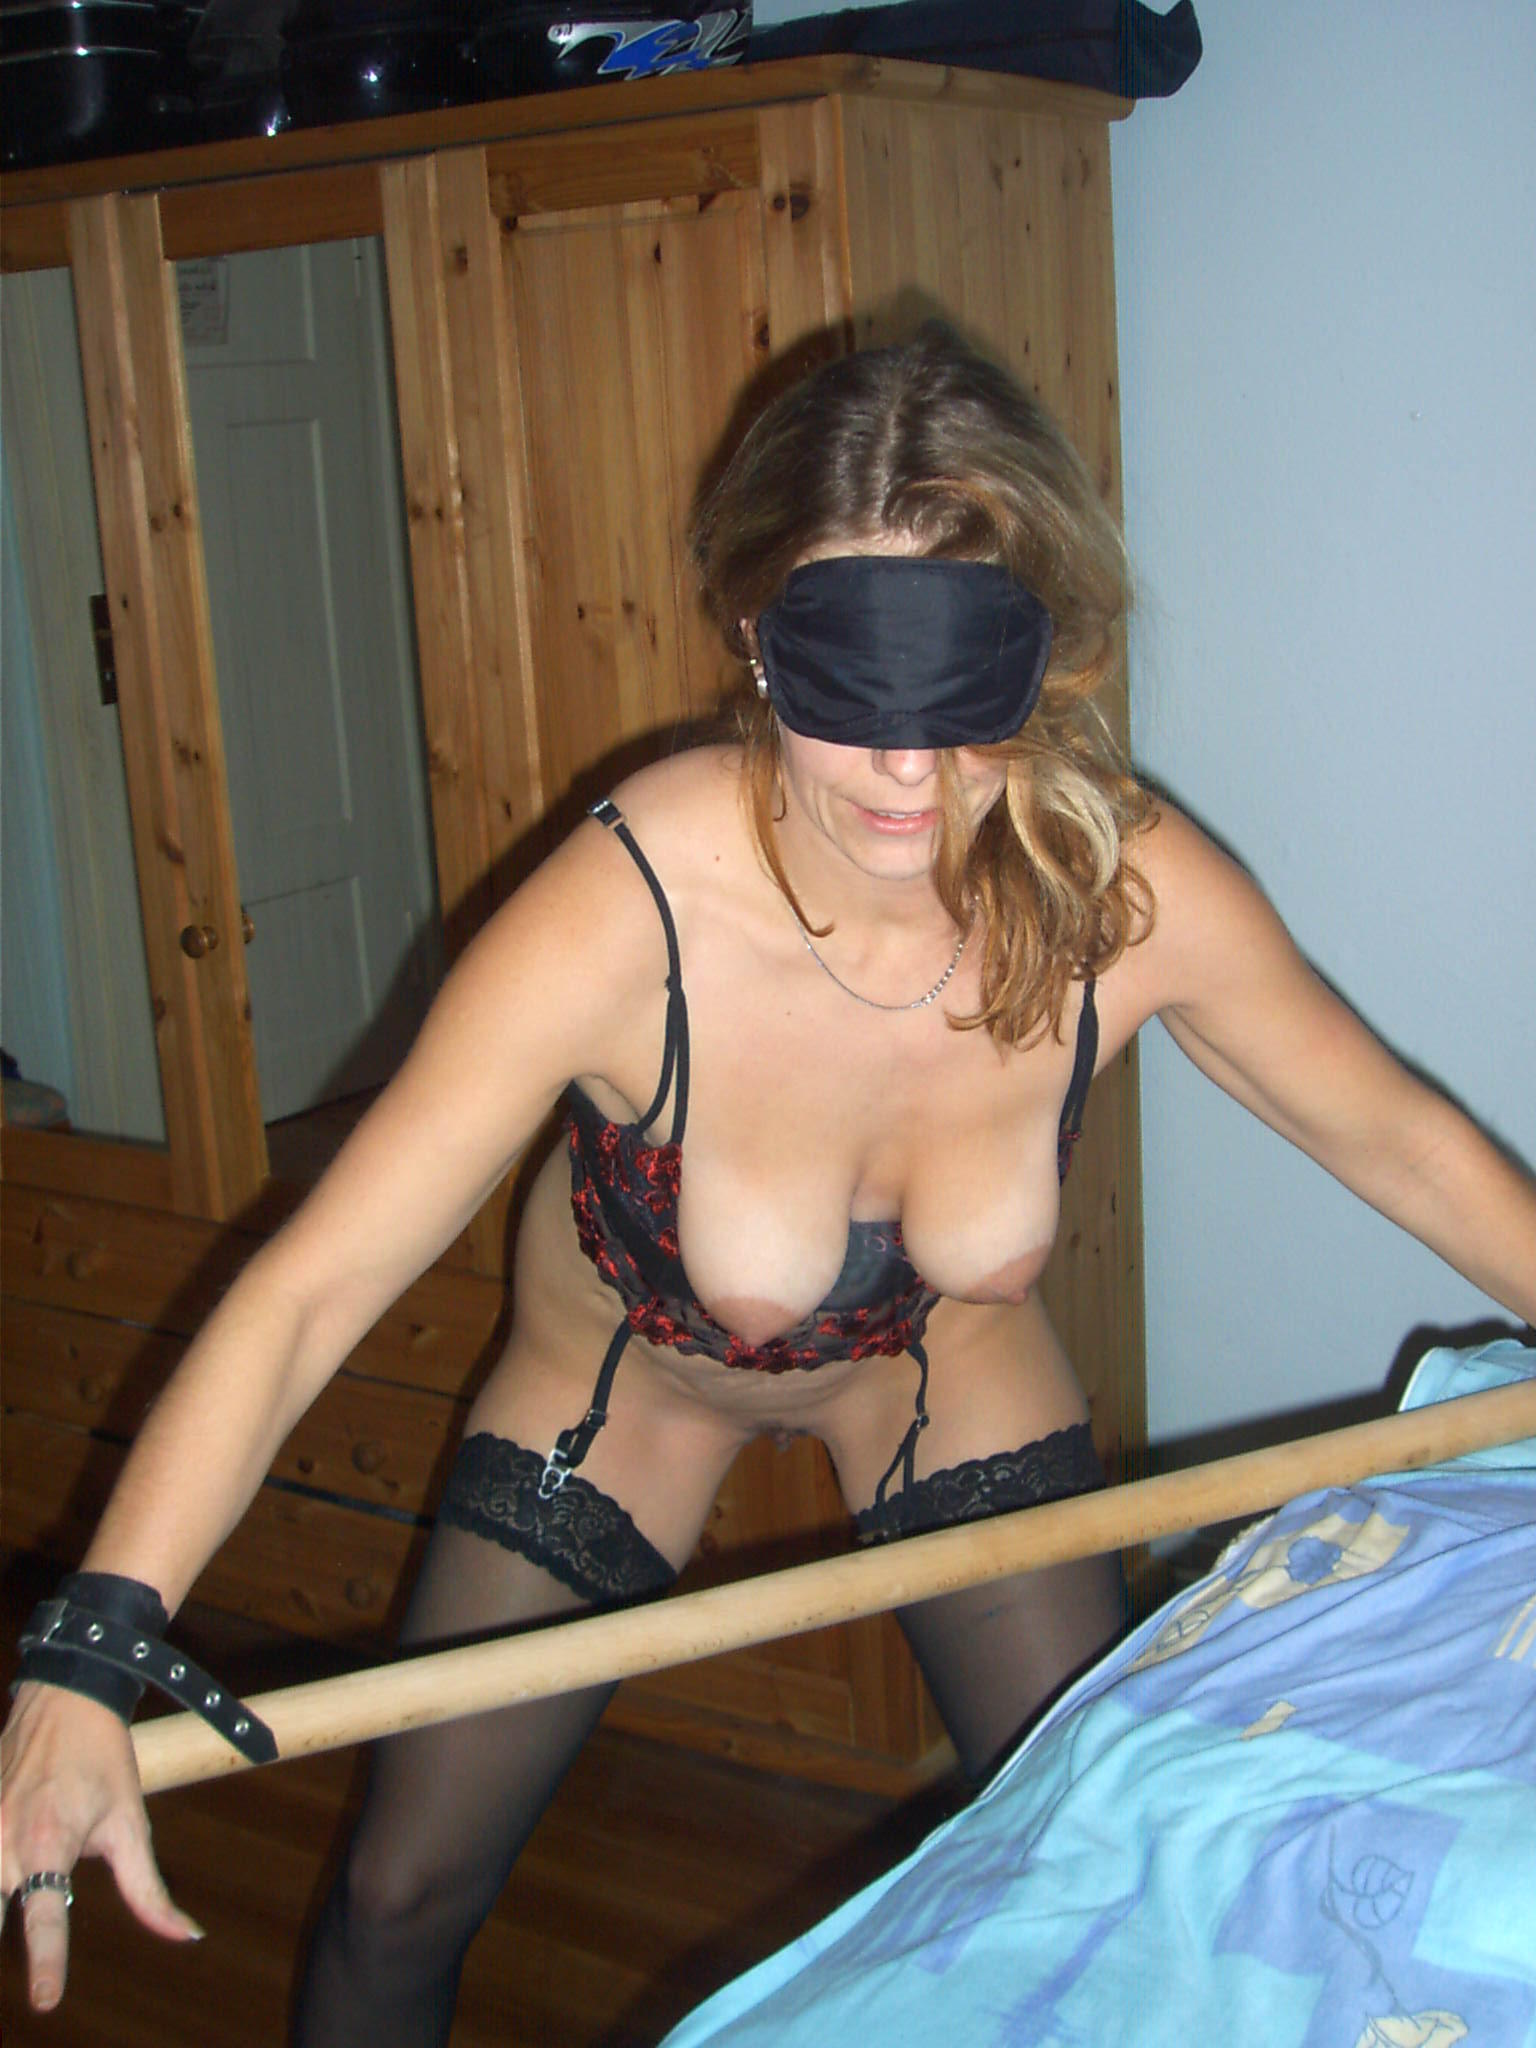 for two nasty euro sluts getting ready seems magnificent idea